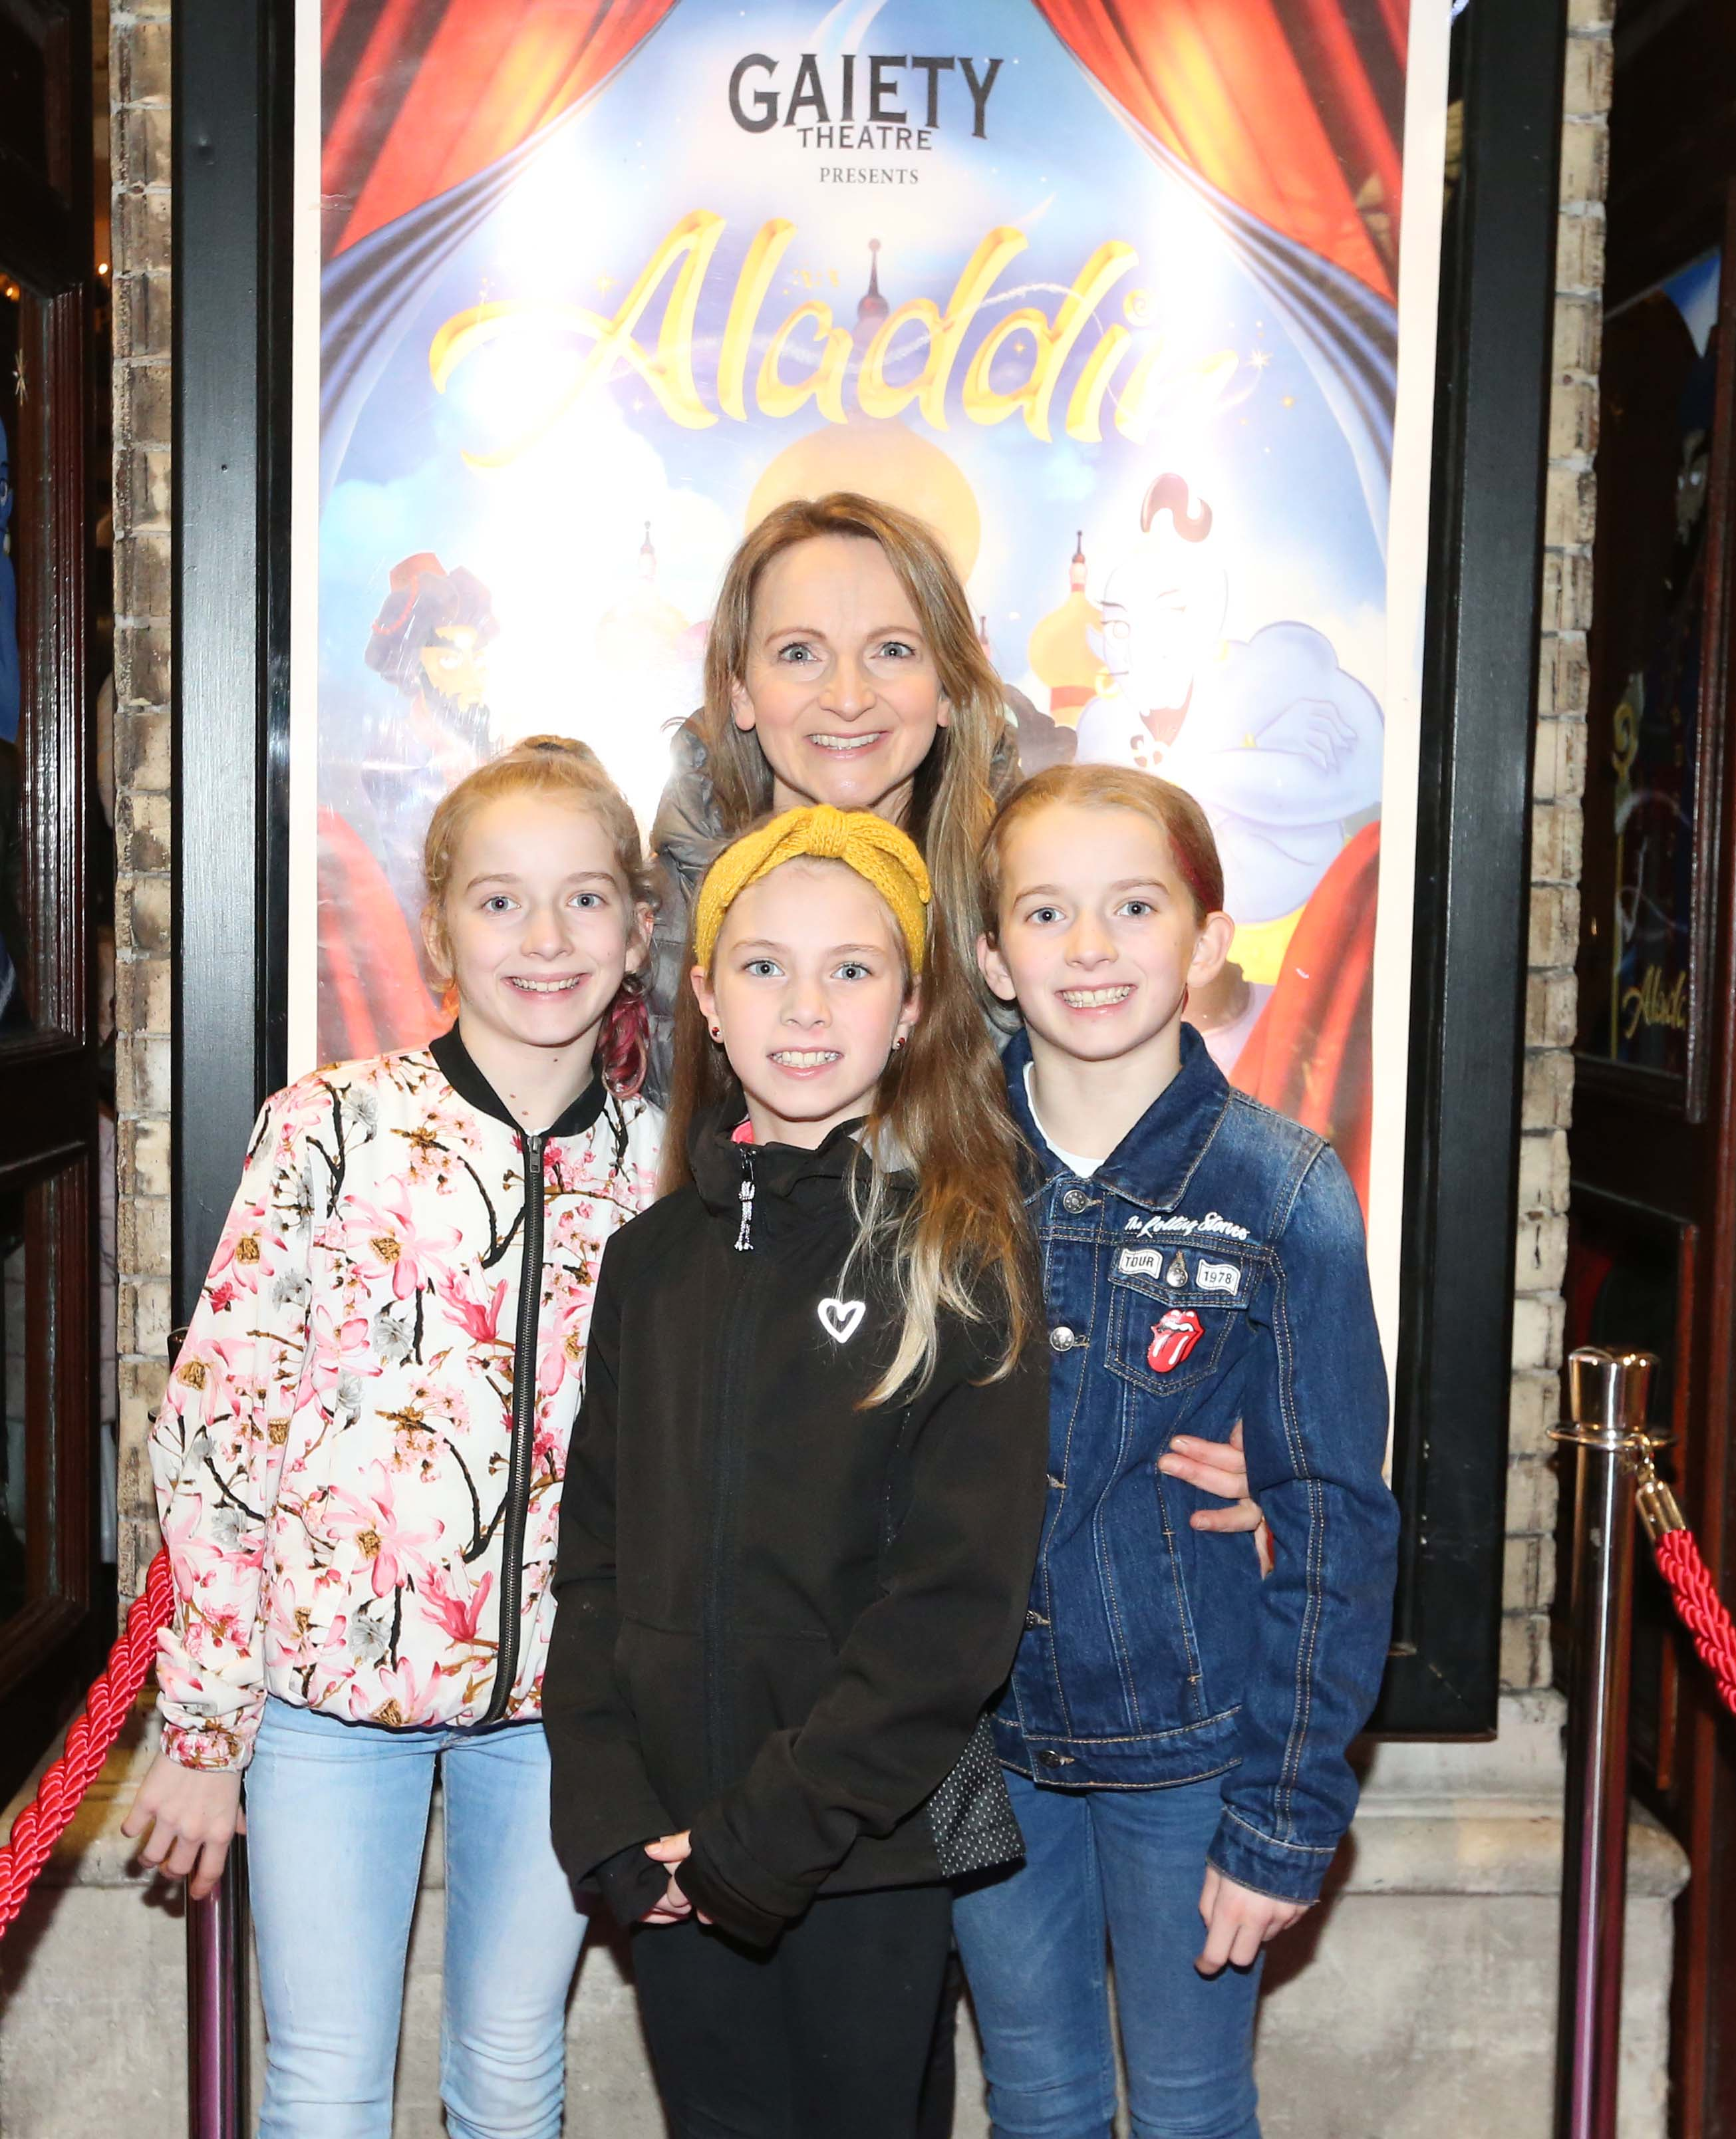 Pictured are (LtoR) Norma Sheahan with Isabelle, Jessica and Jodi at  the official opening of the Gaiety Theatre Christmas Panto, Aladdin. Aladdin opens at the Gaiety Theatre Sunday 24th November. Photo: Sasko Lazarov/Photocall Ireland